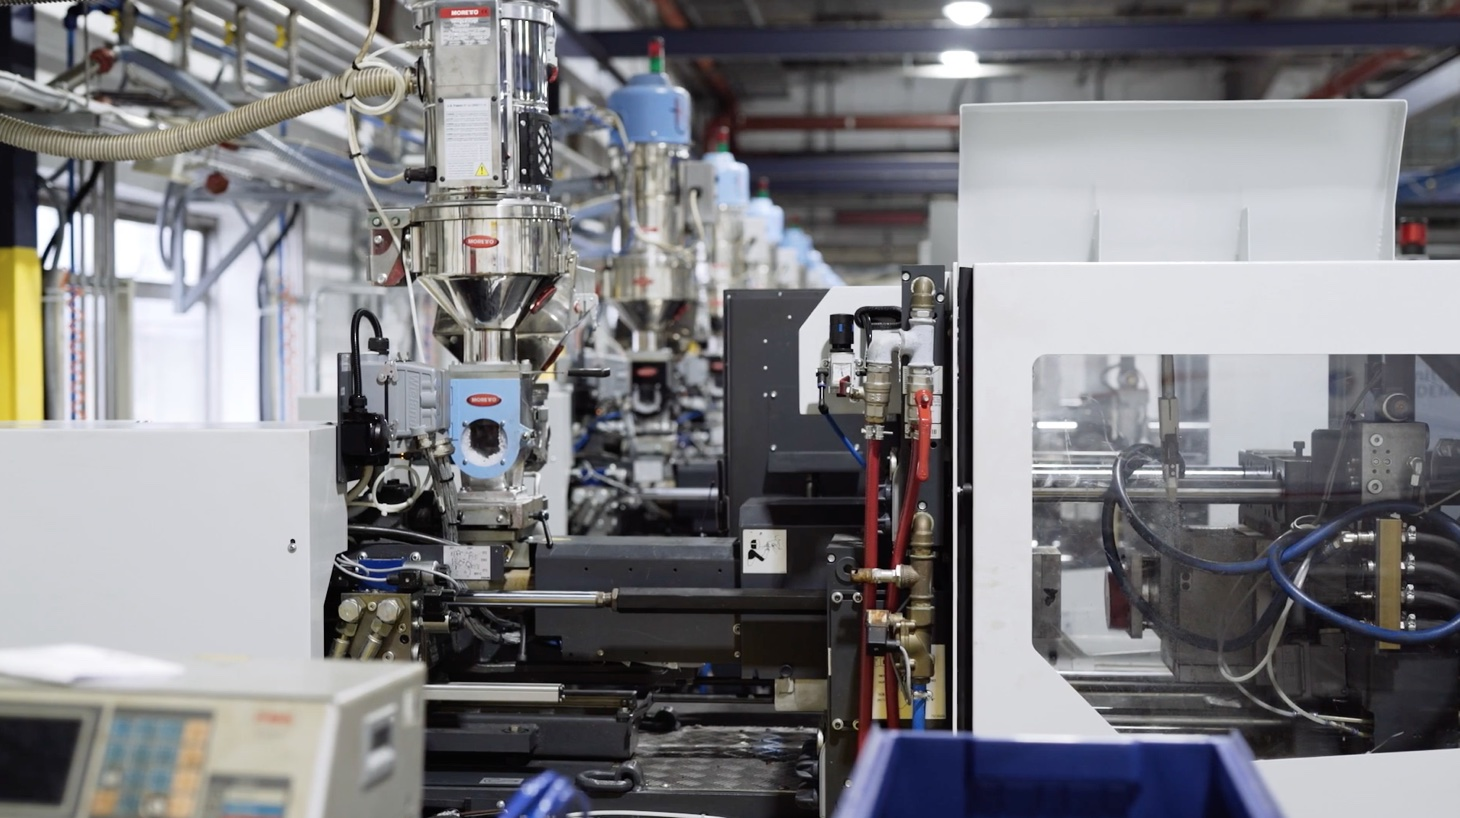 Using Industry 4.0 to maintain quality